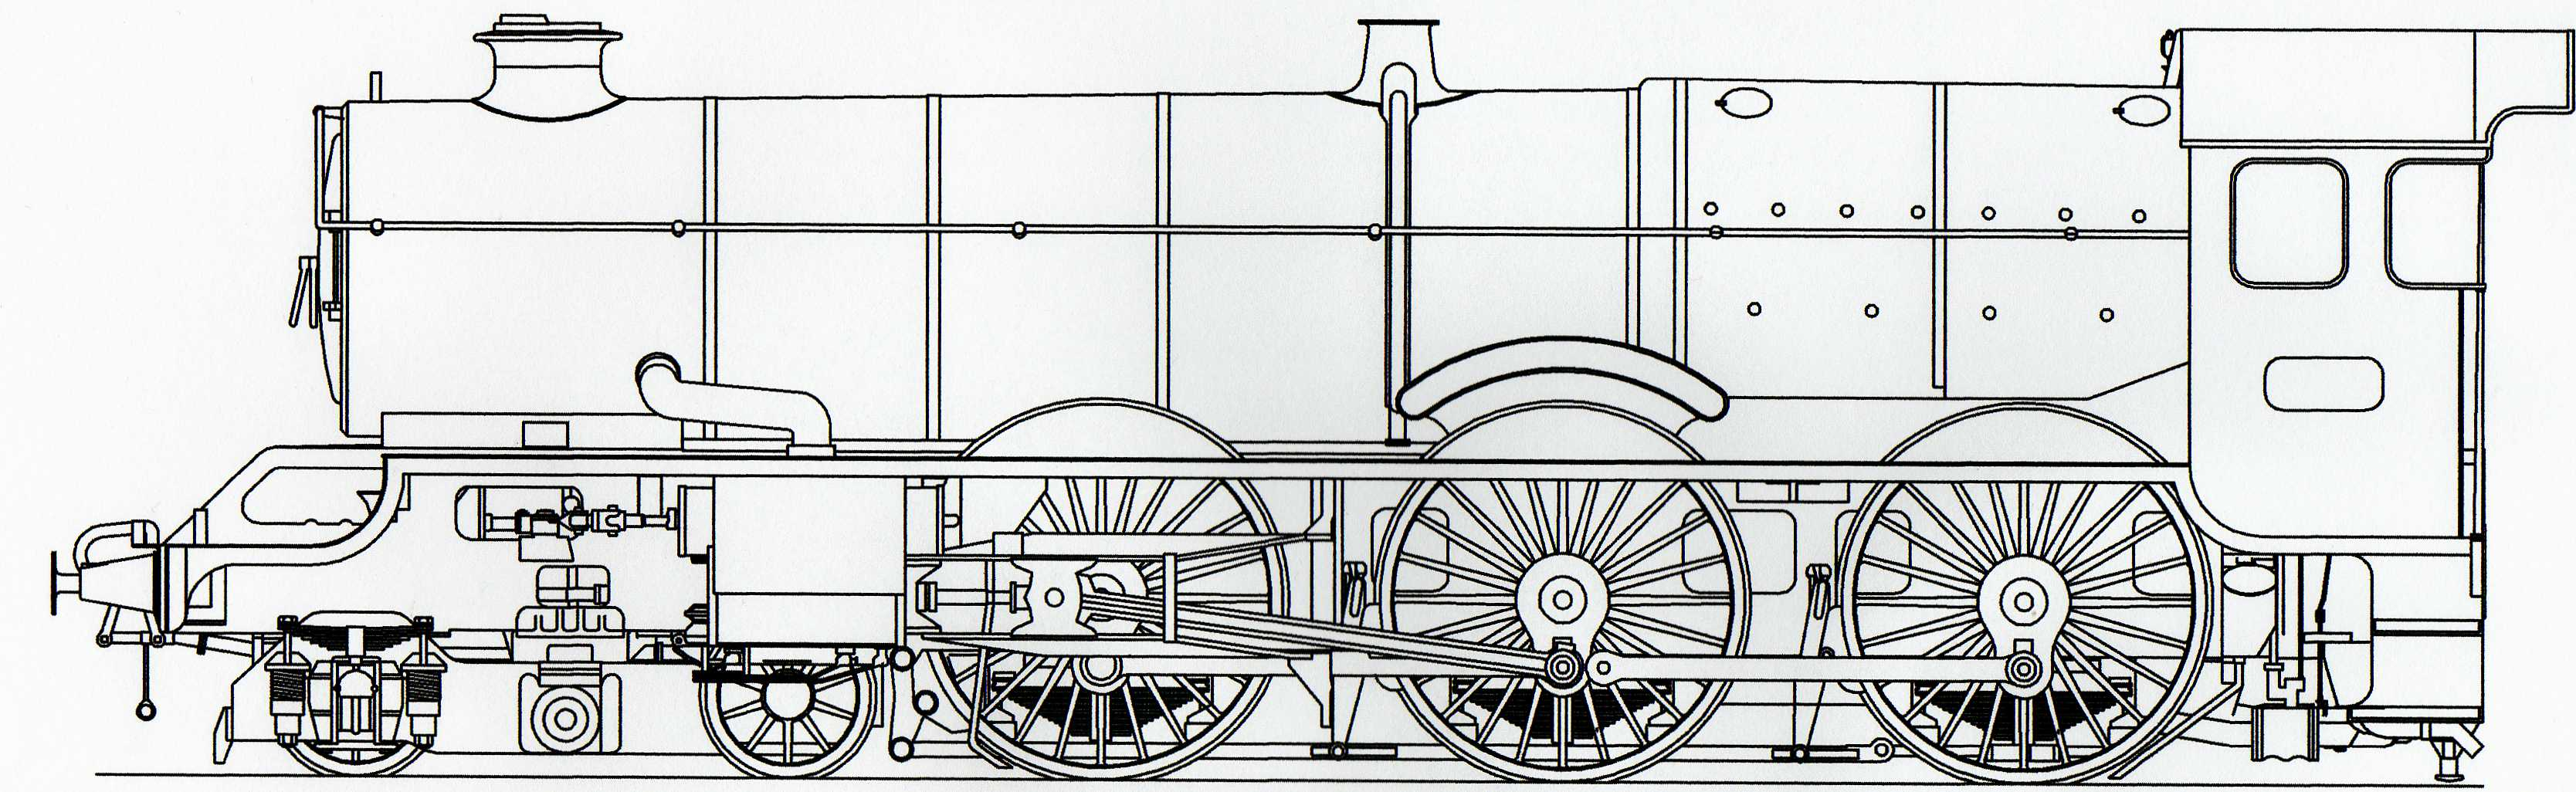 File autocad drawing of a great western for Online autocad drawing